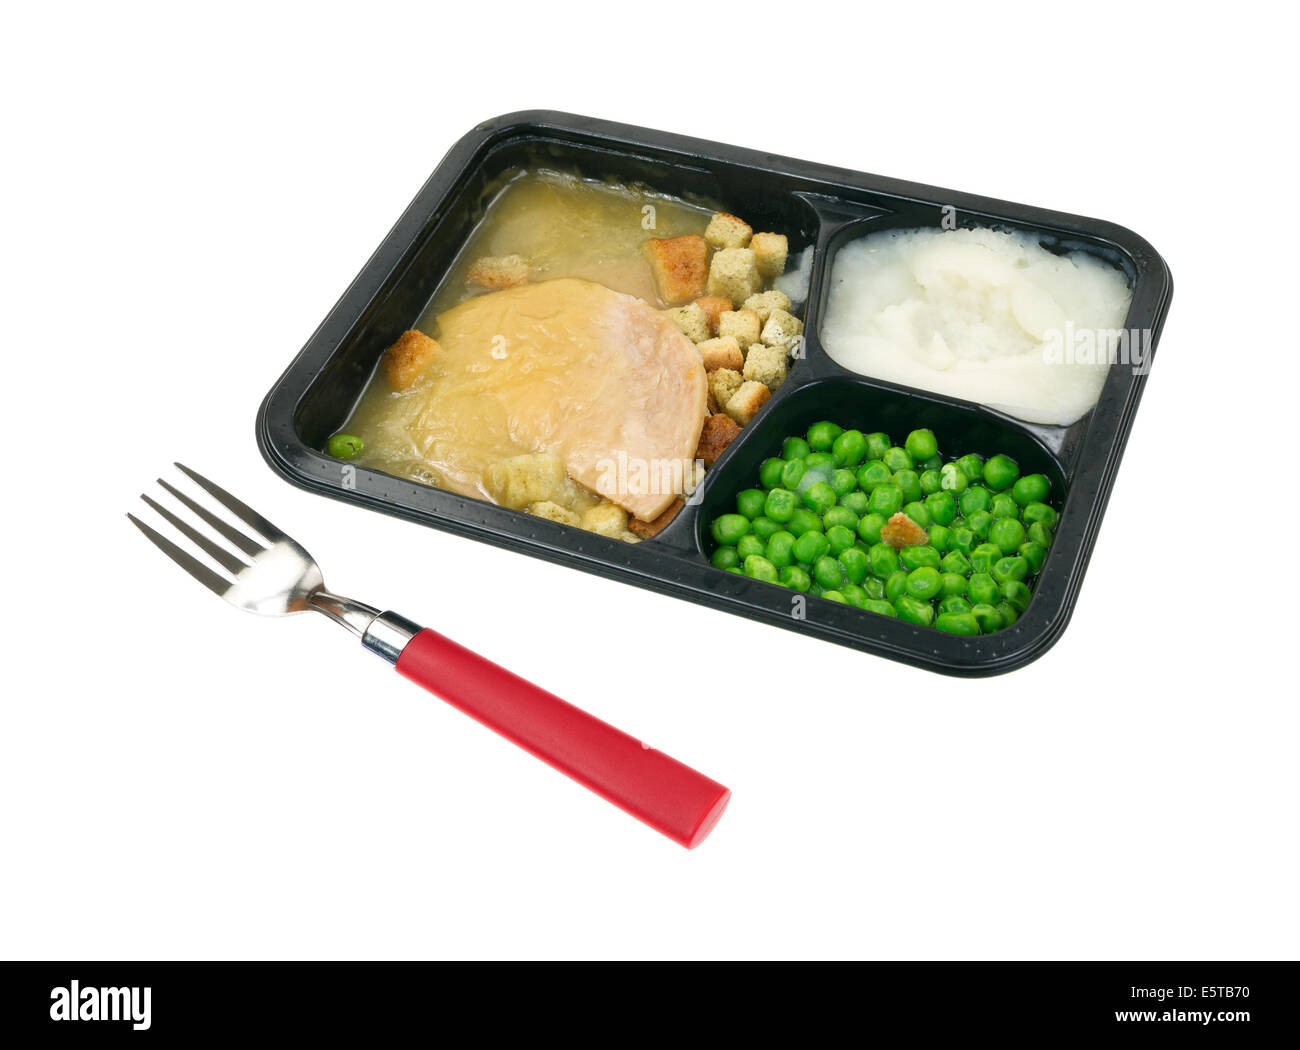 A sliced turkey in gravy with mashed potatoes and green peas TV dinner in black tray with red handled fork in the - Stock Image